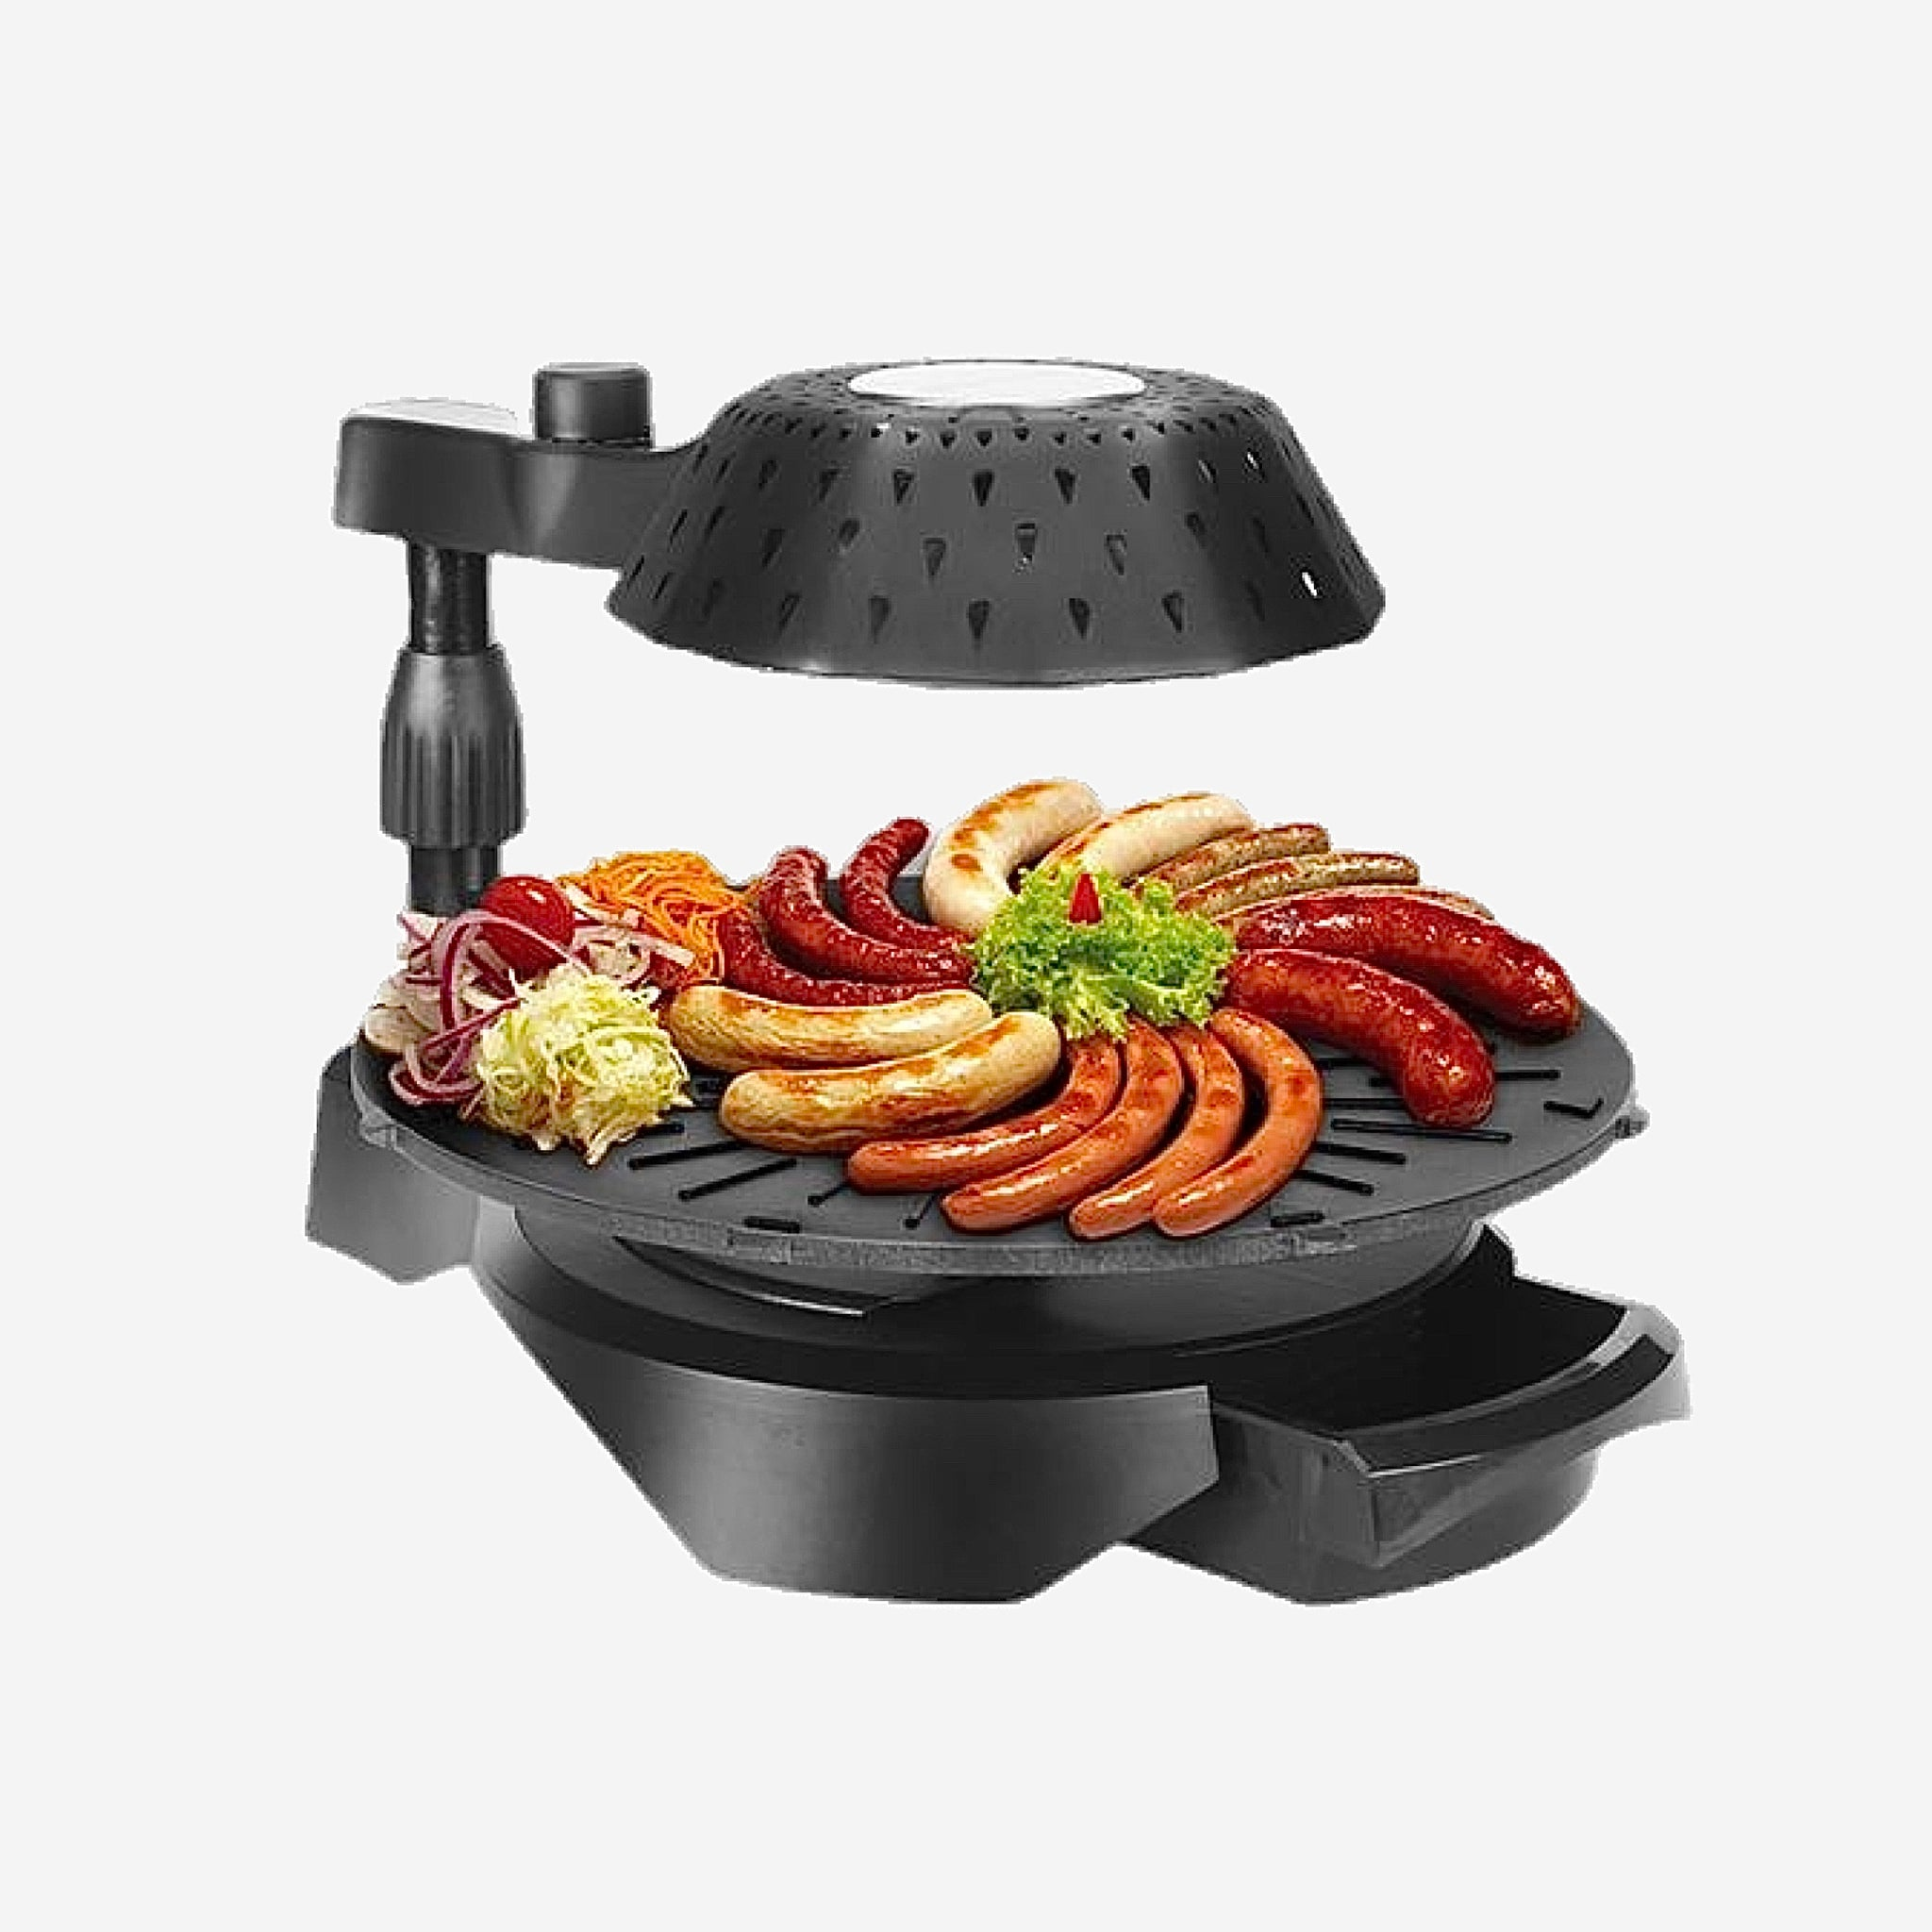 Japanese Black Rotating Infrared Grill Electric Barbecue Machine Non-stick baking pan tray Japan Home cooking appliance TrendIng Style